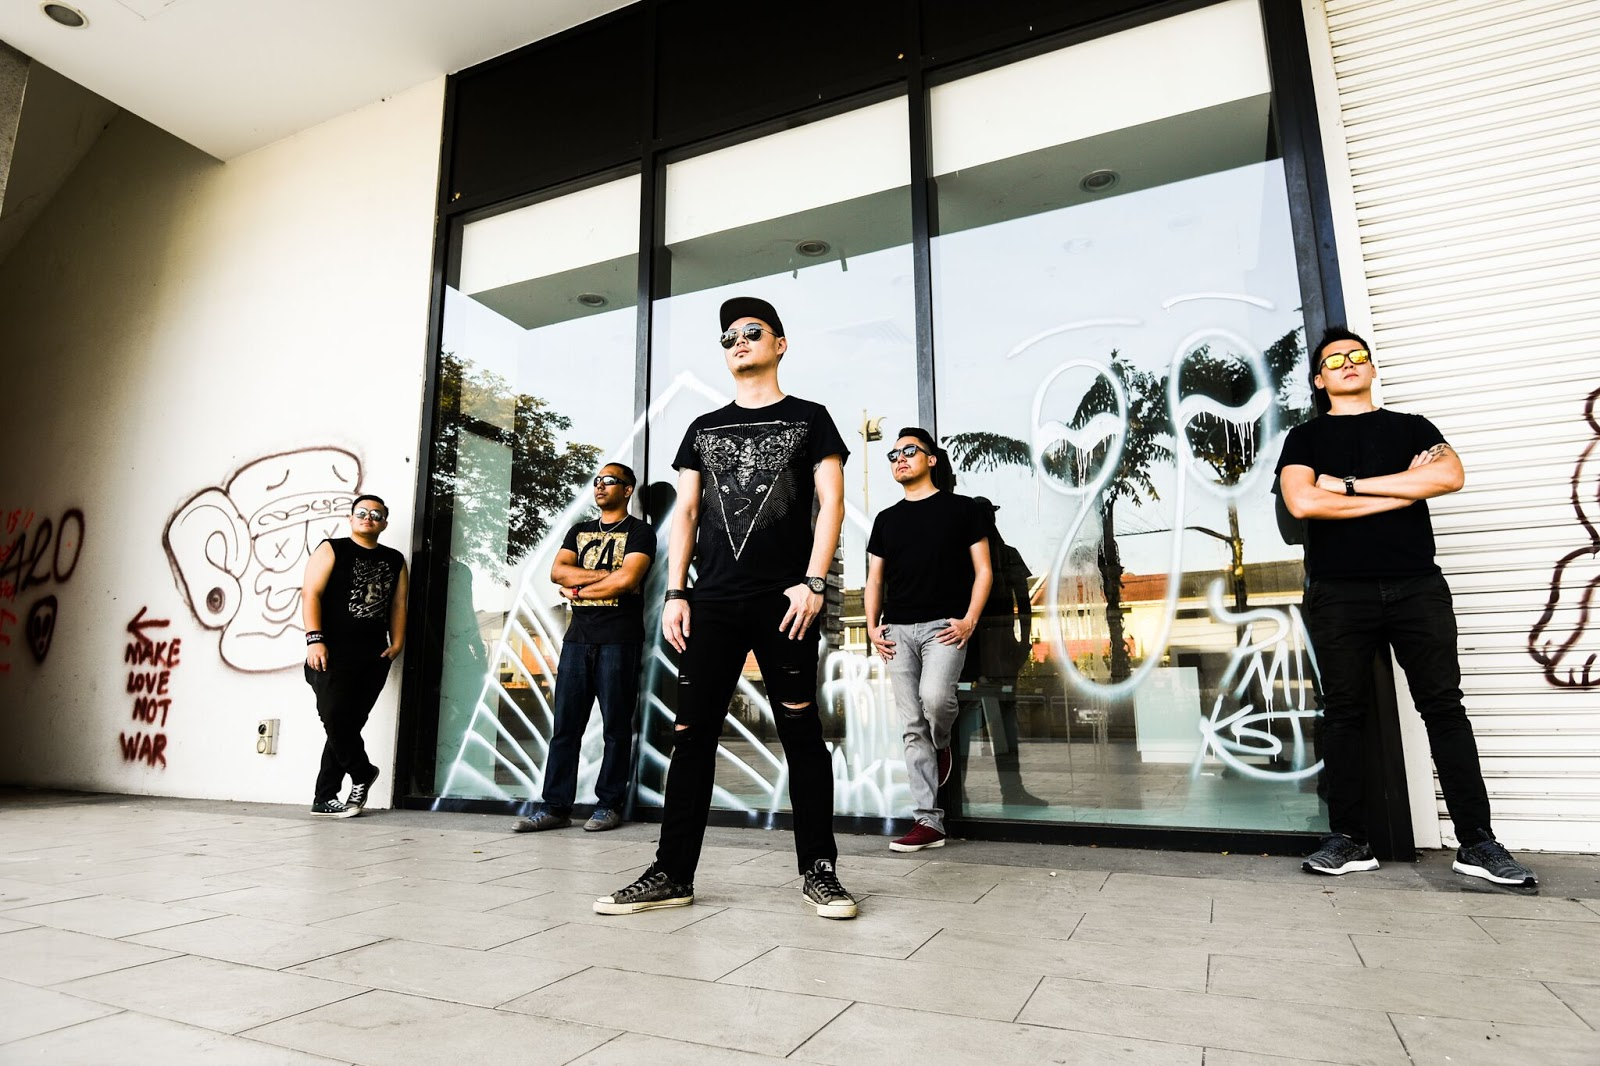 Malaysia's Airwaves On Fire are launching their debut EP